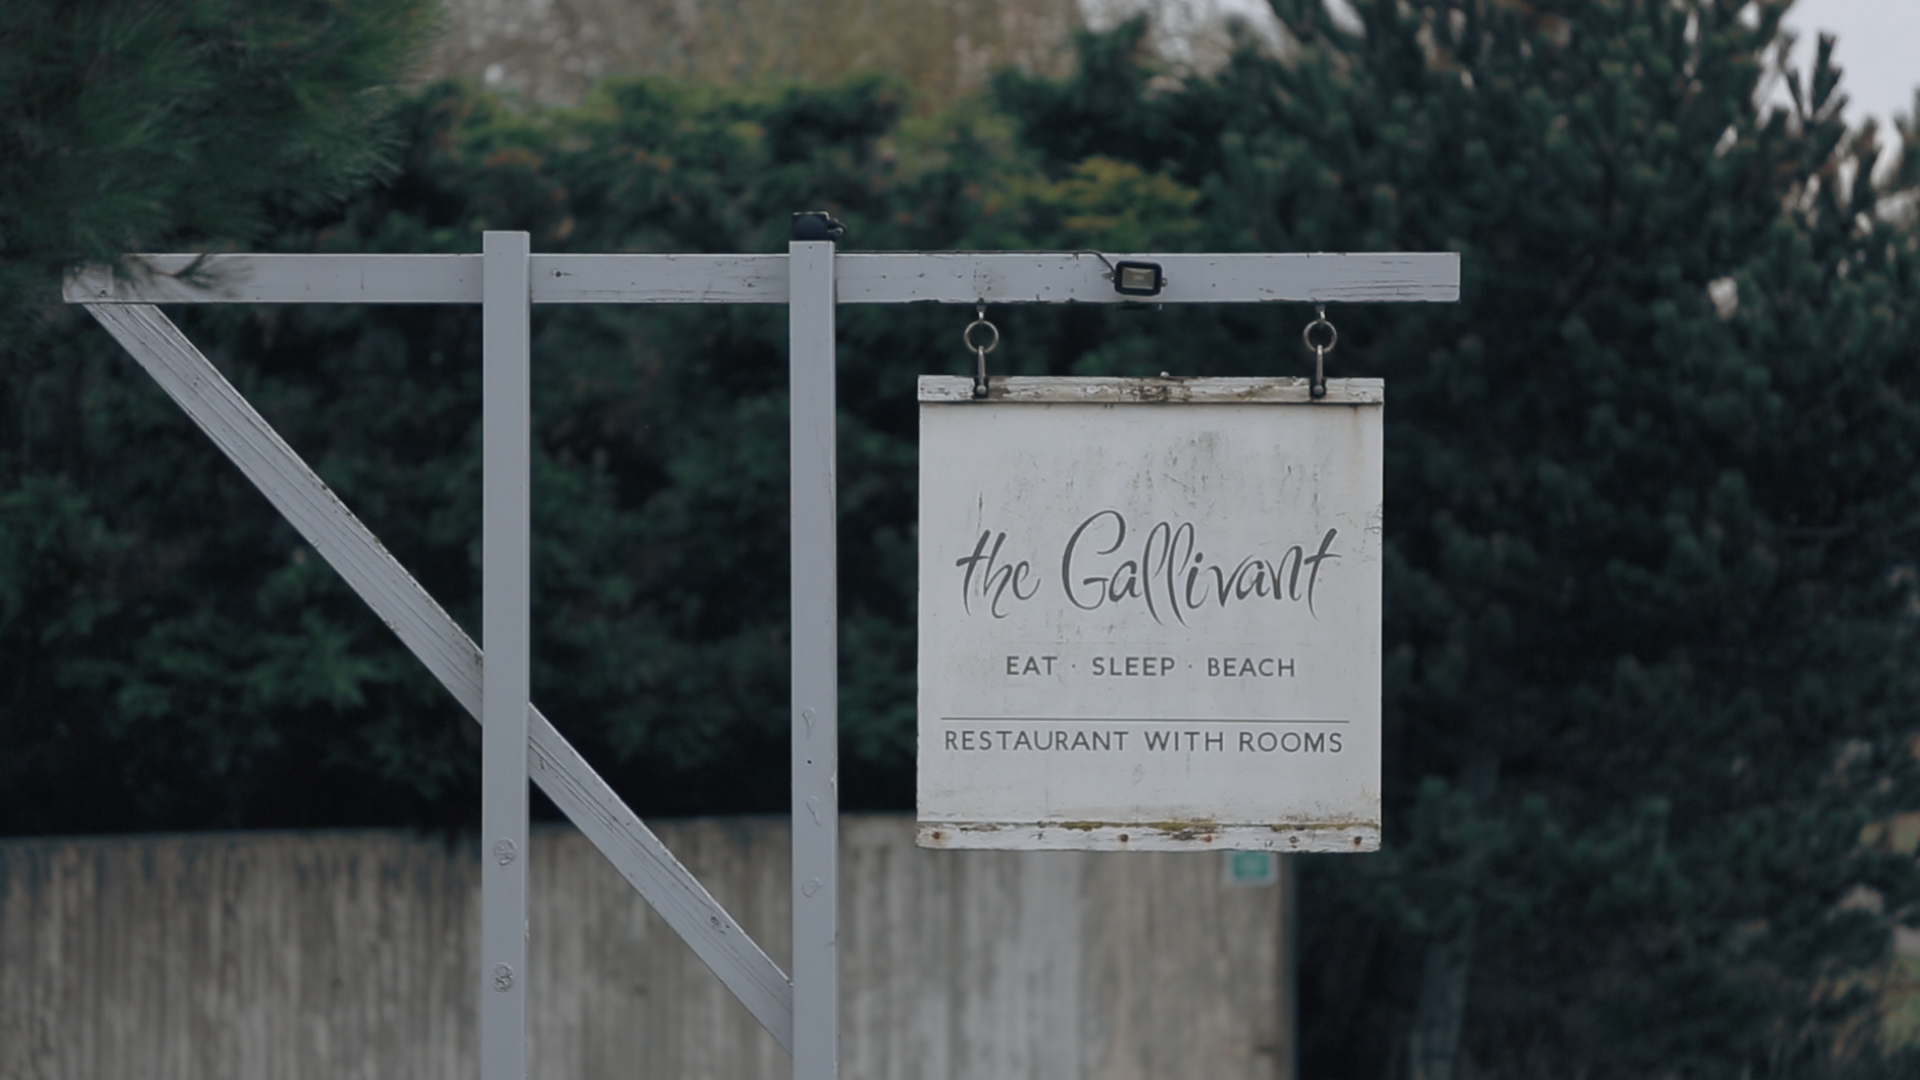 Wedding video from the Gallivant